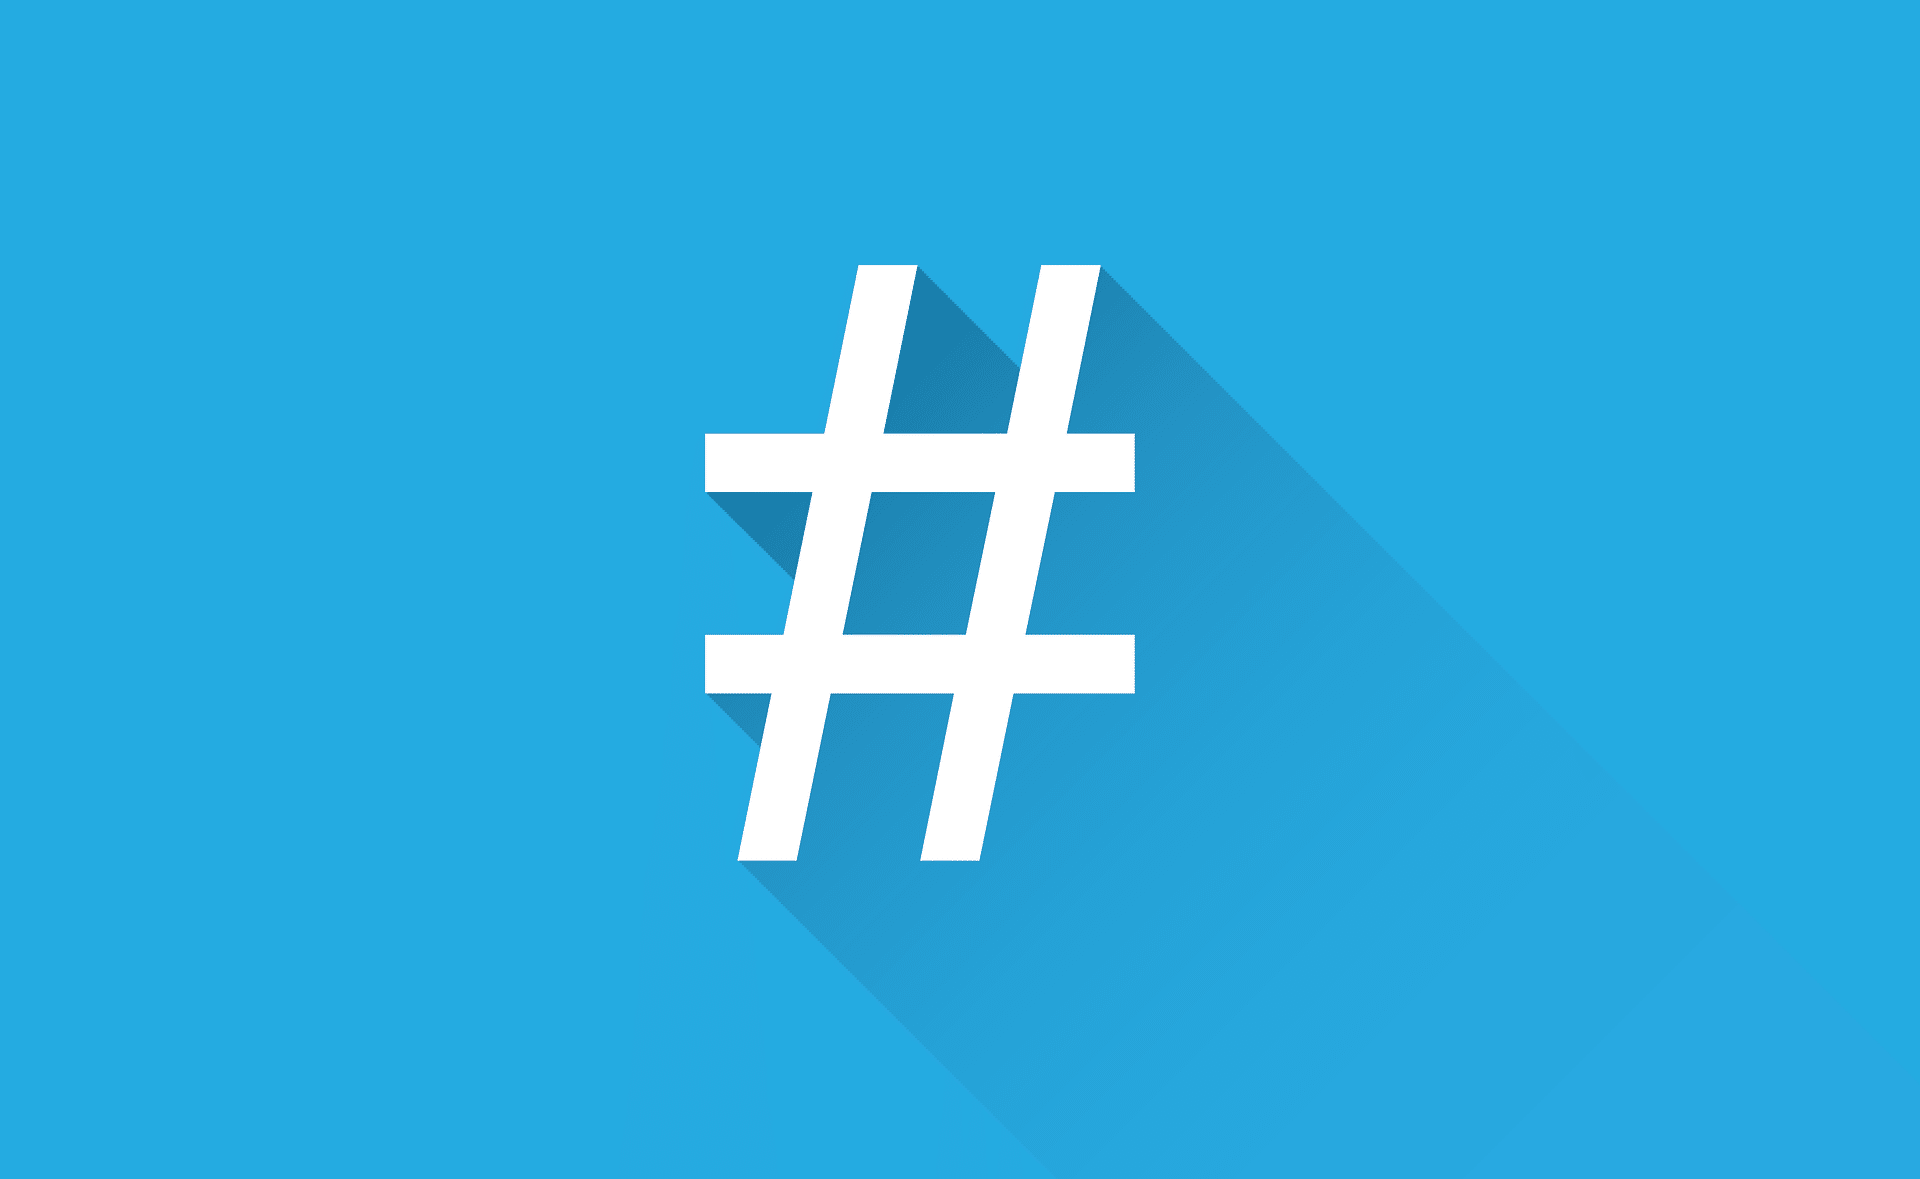 How To Use Hashtags On Instagram And Get Meaningful Results